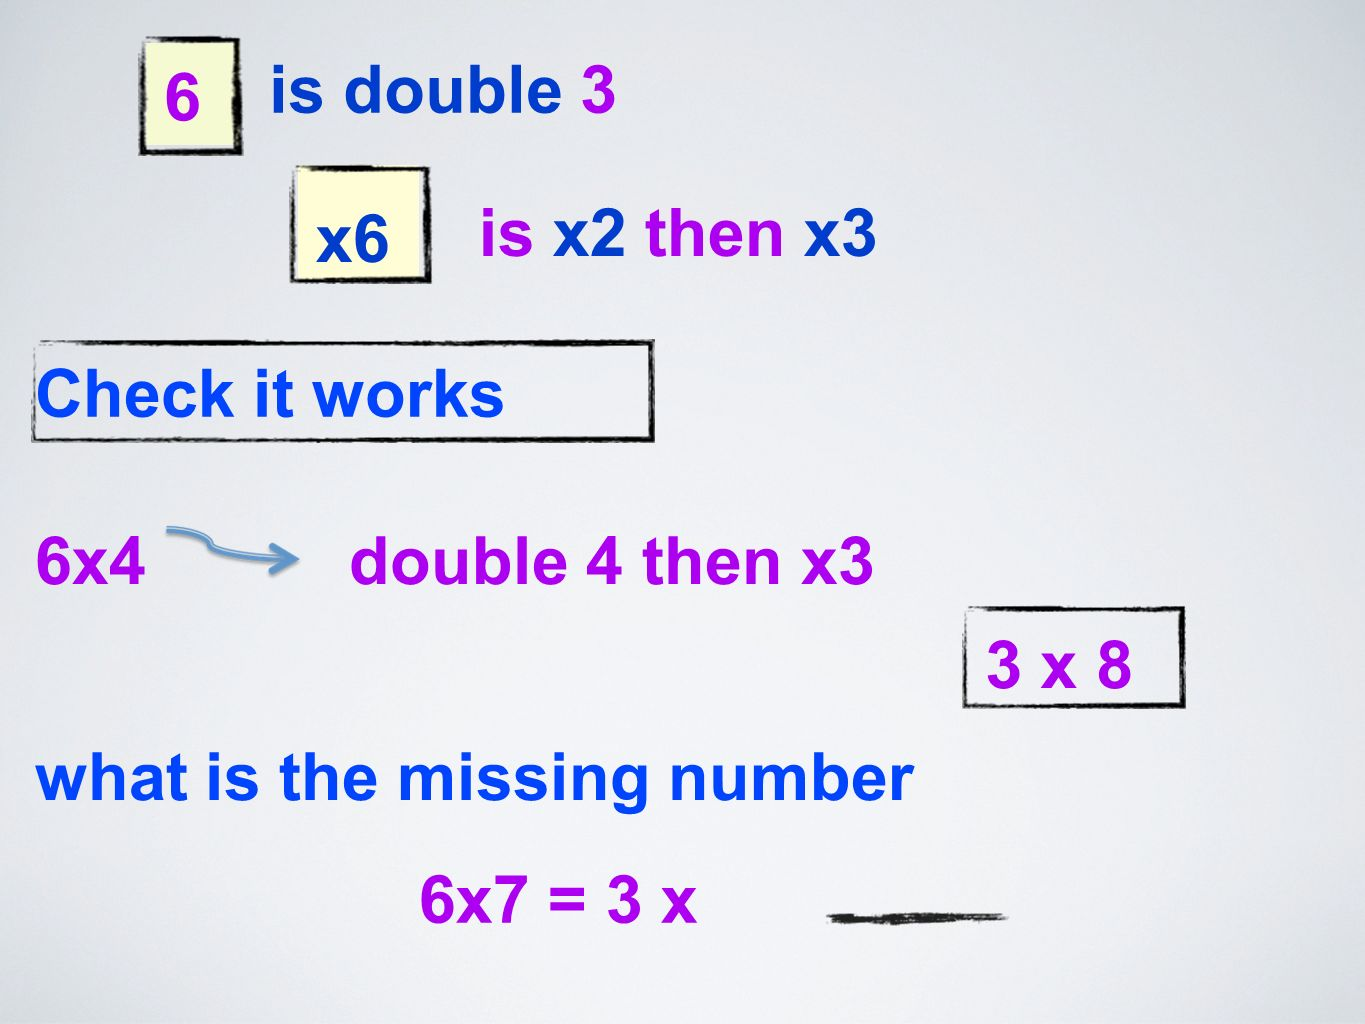 Check it works 6x4 double 4 then x3 what is the missing number 6x7 = 3 x 3 x 8 x6 is x2 then x3 6 is double 3